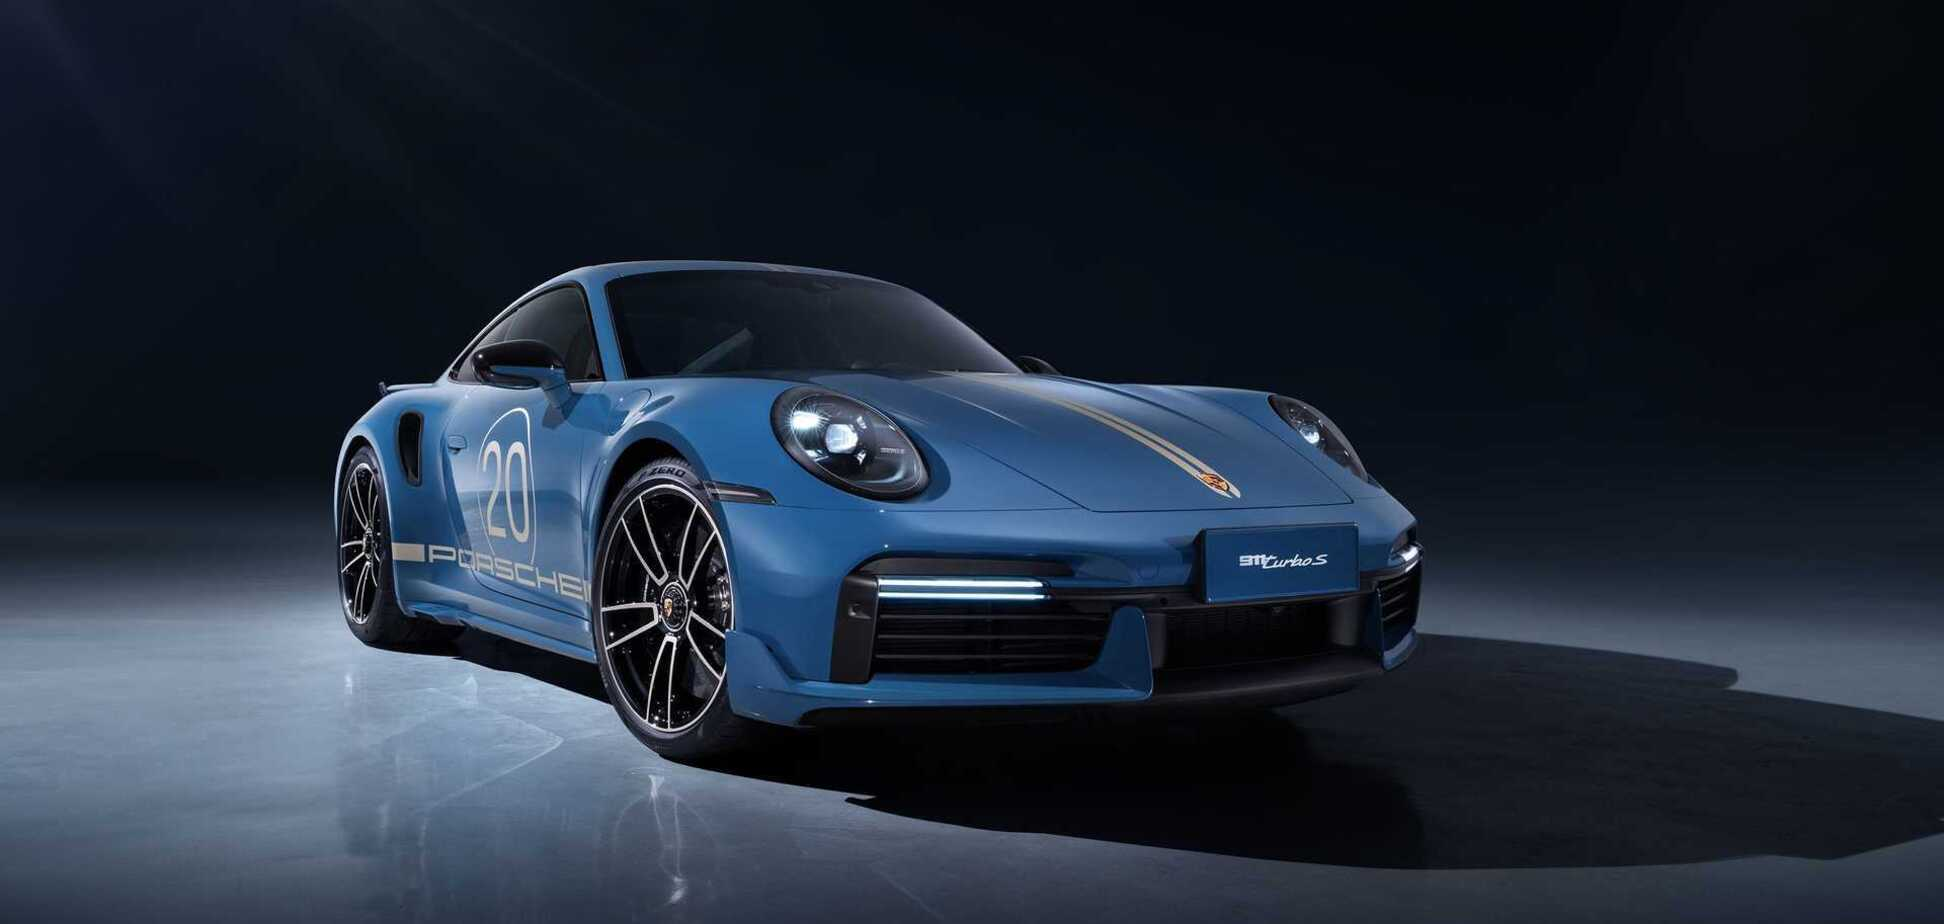 Porsche 911 Turbo S Porsche China 20th Anniversary Edition